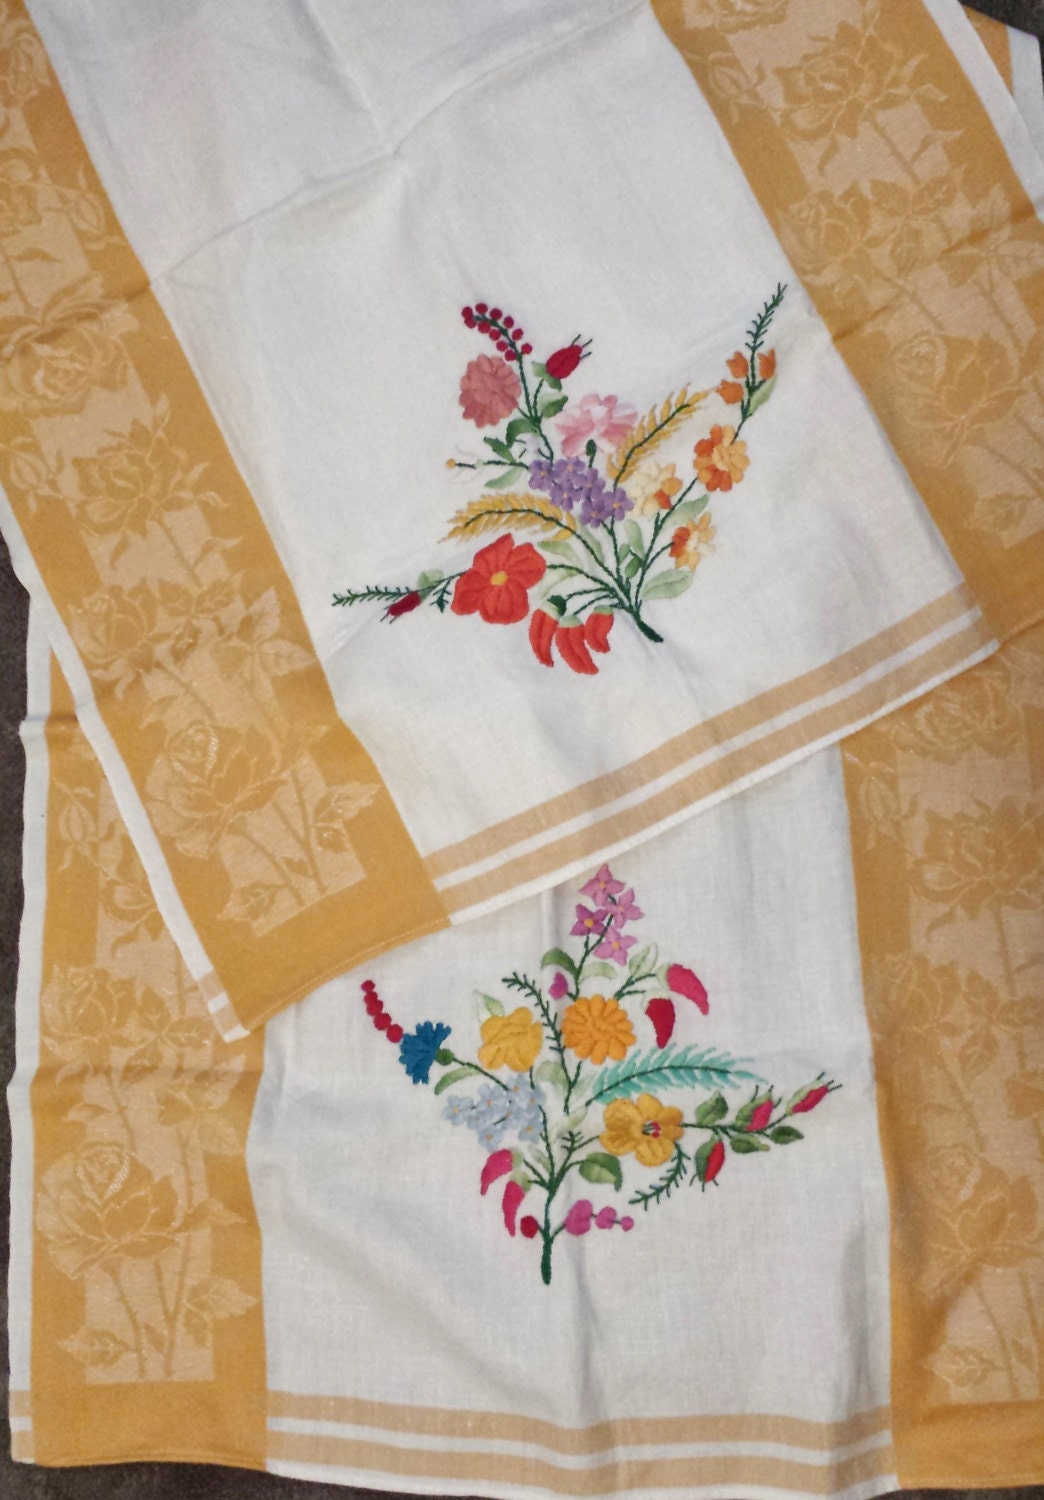 Two Vintage Linen Tea Towel Kitchen Embroidered Kitschy Shabby